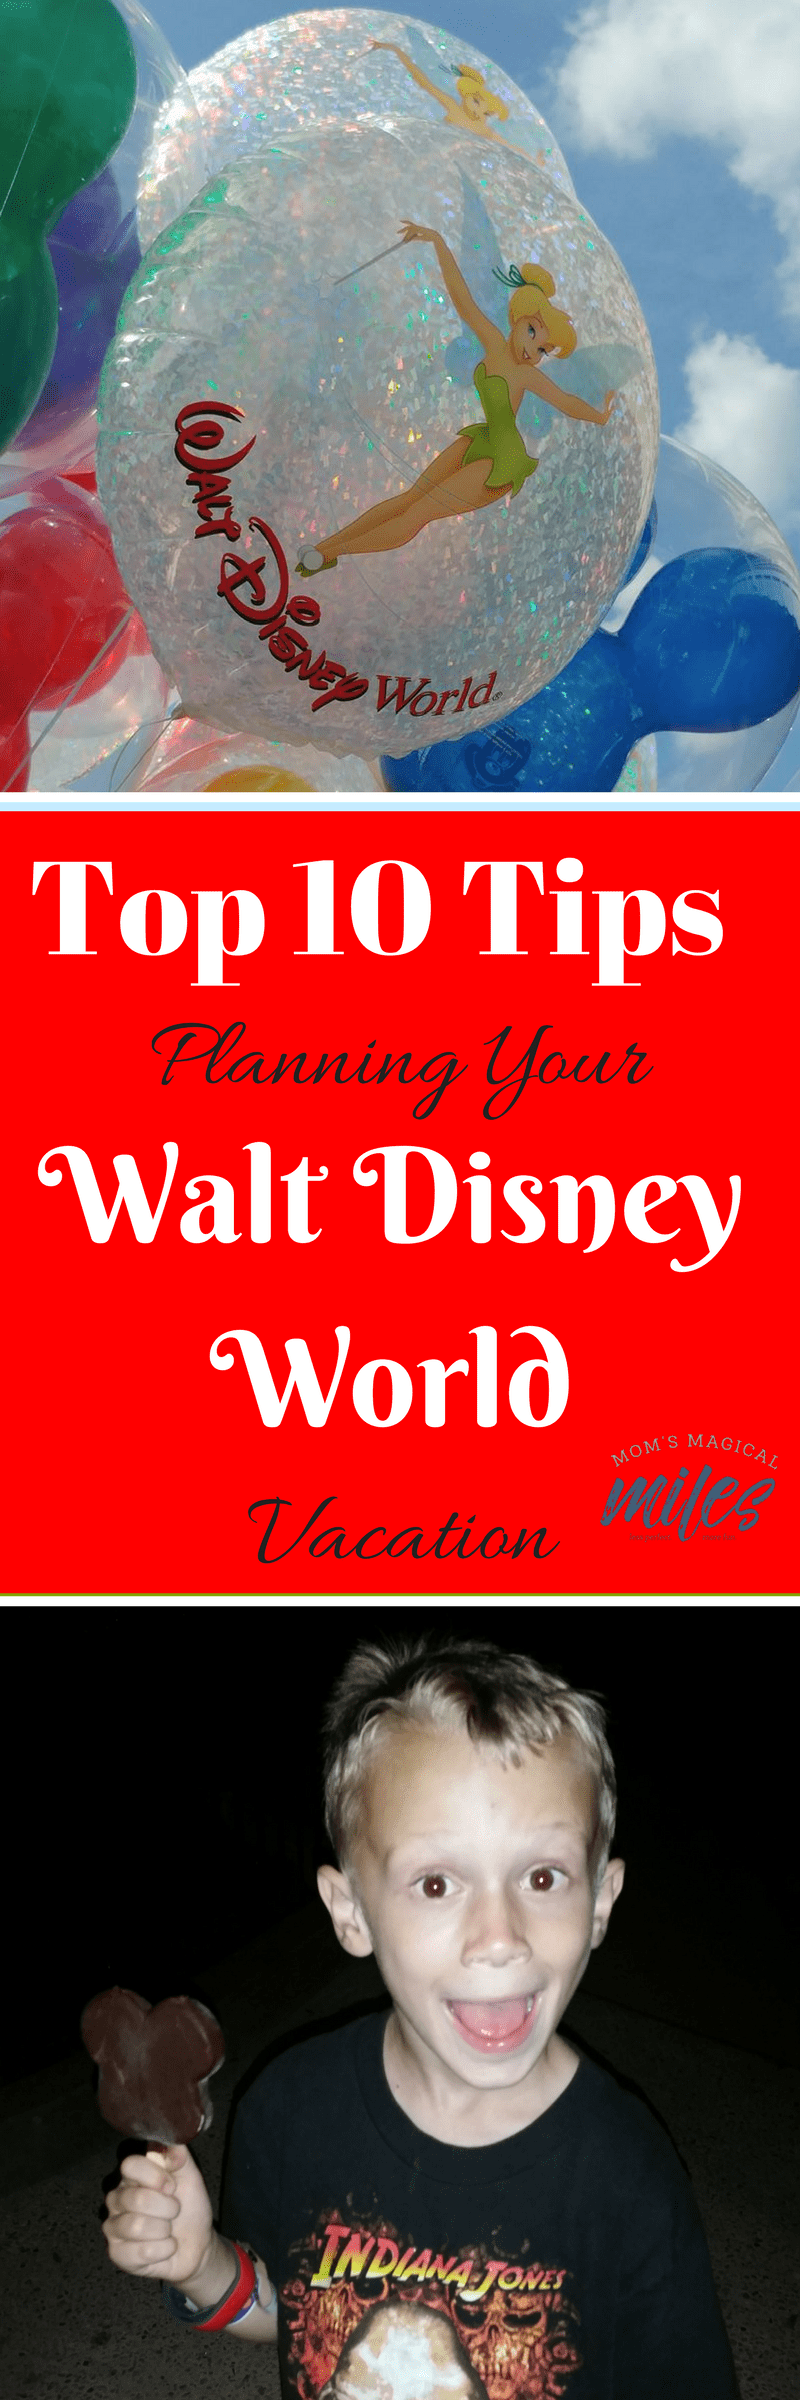 Never been to Walt Disney World? You've visited, but it's been a while? Then I'm talking to you! I'm giving you my top 10 Disney planning tips! #WaltDisneyWorld #DisneyPlanning